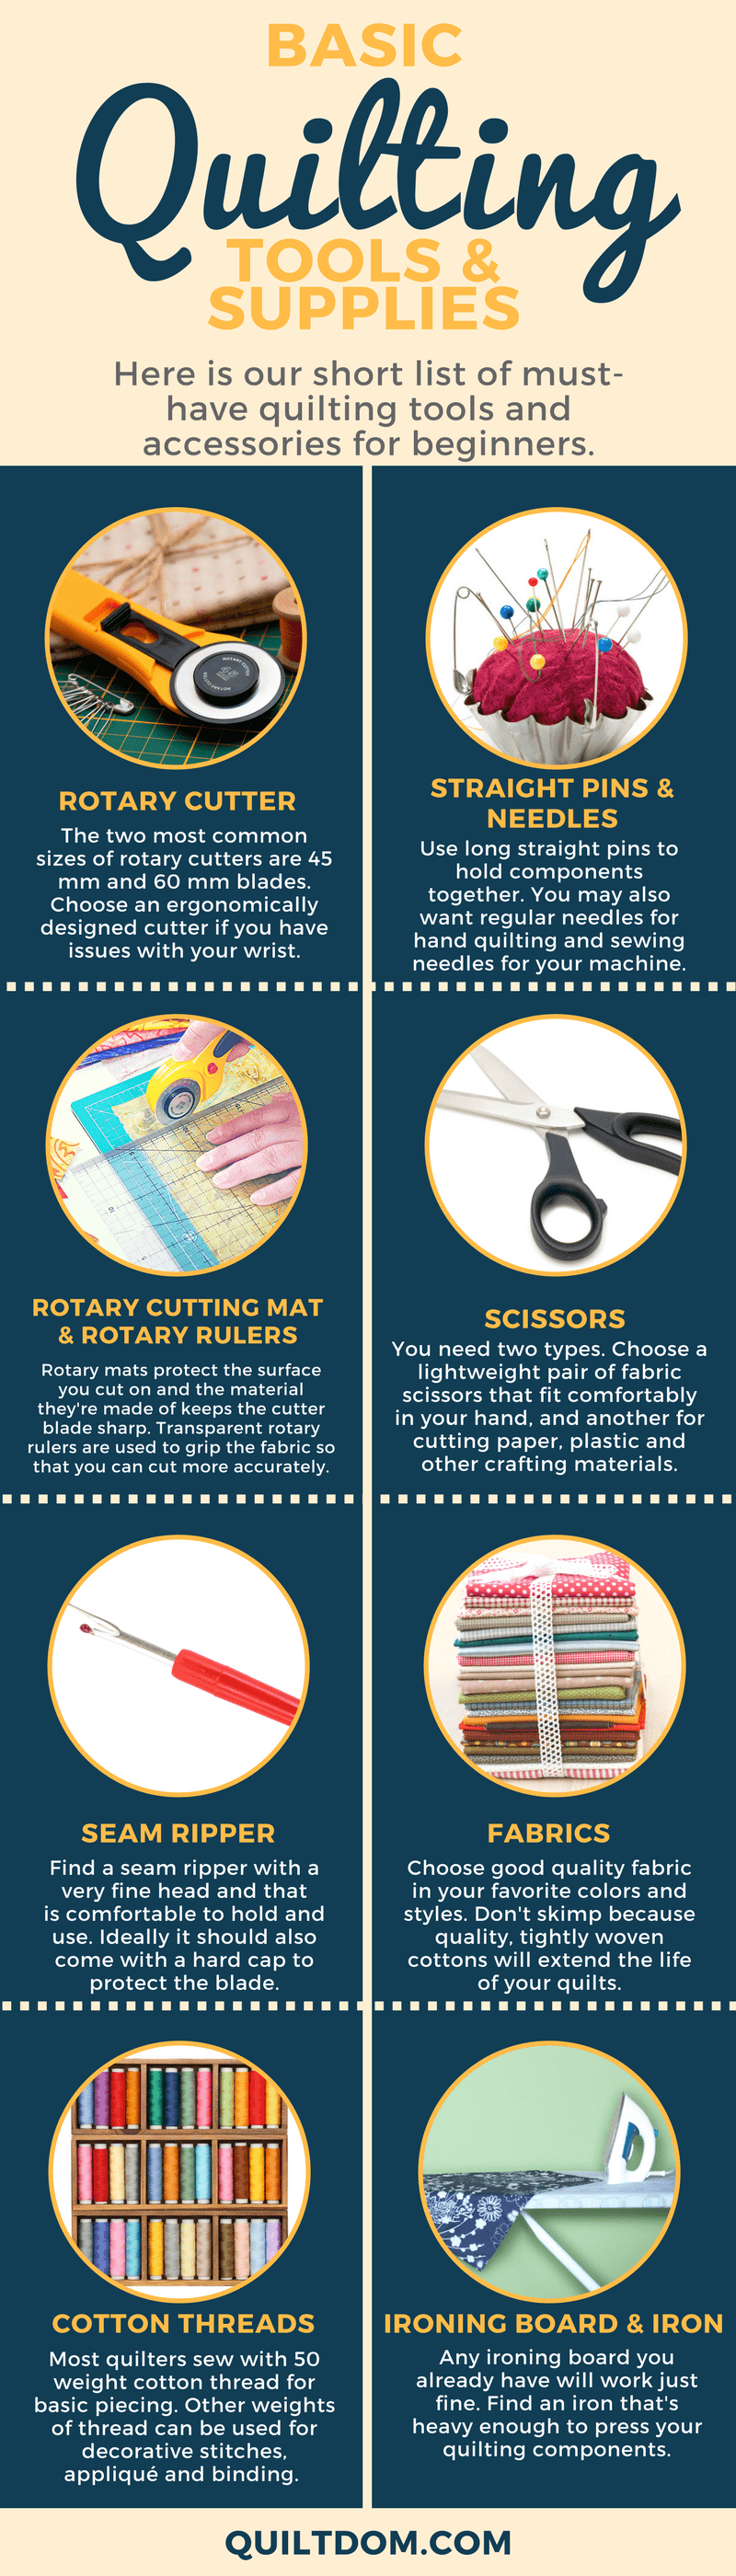 Quilting Supplies for Beginners : quilting tools and supplies - Adamdwight.com